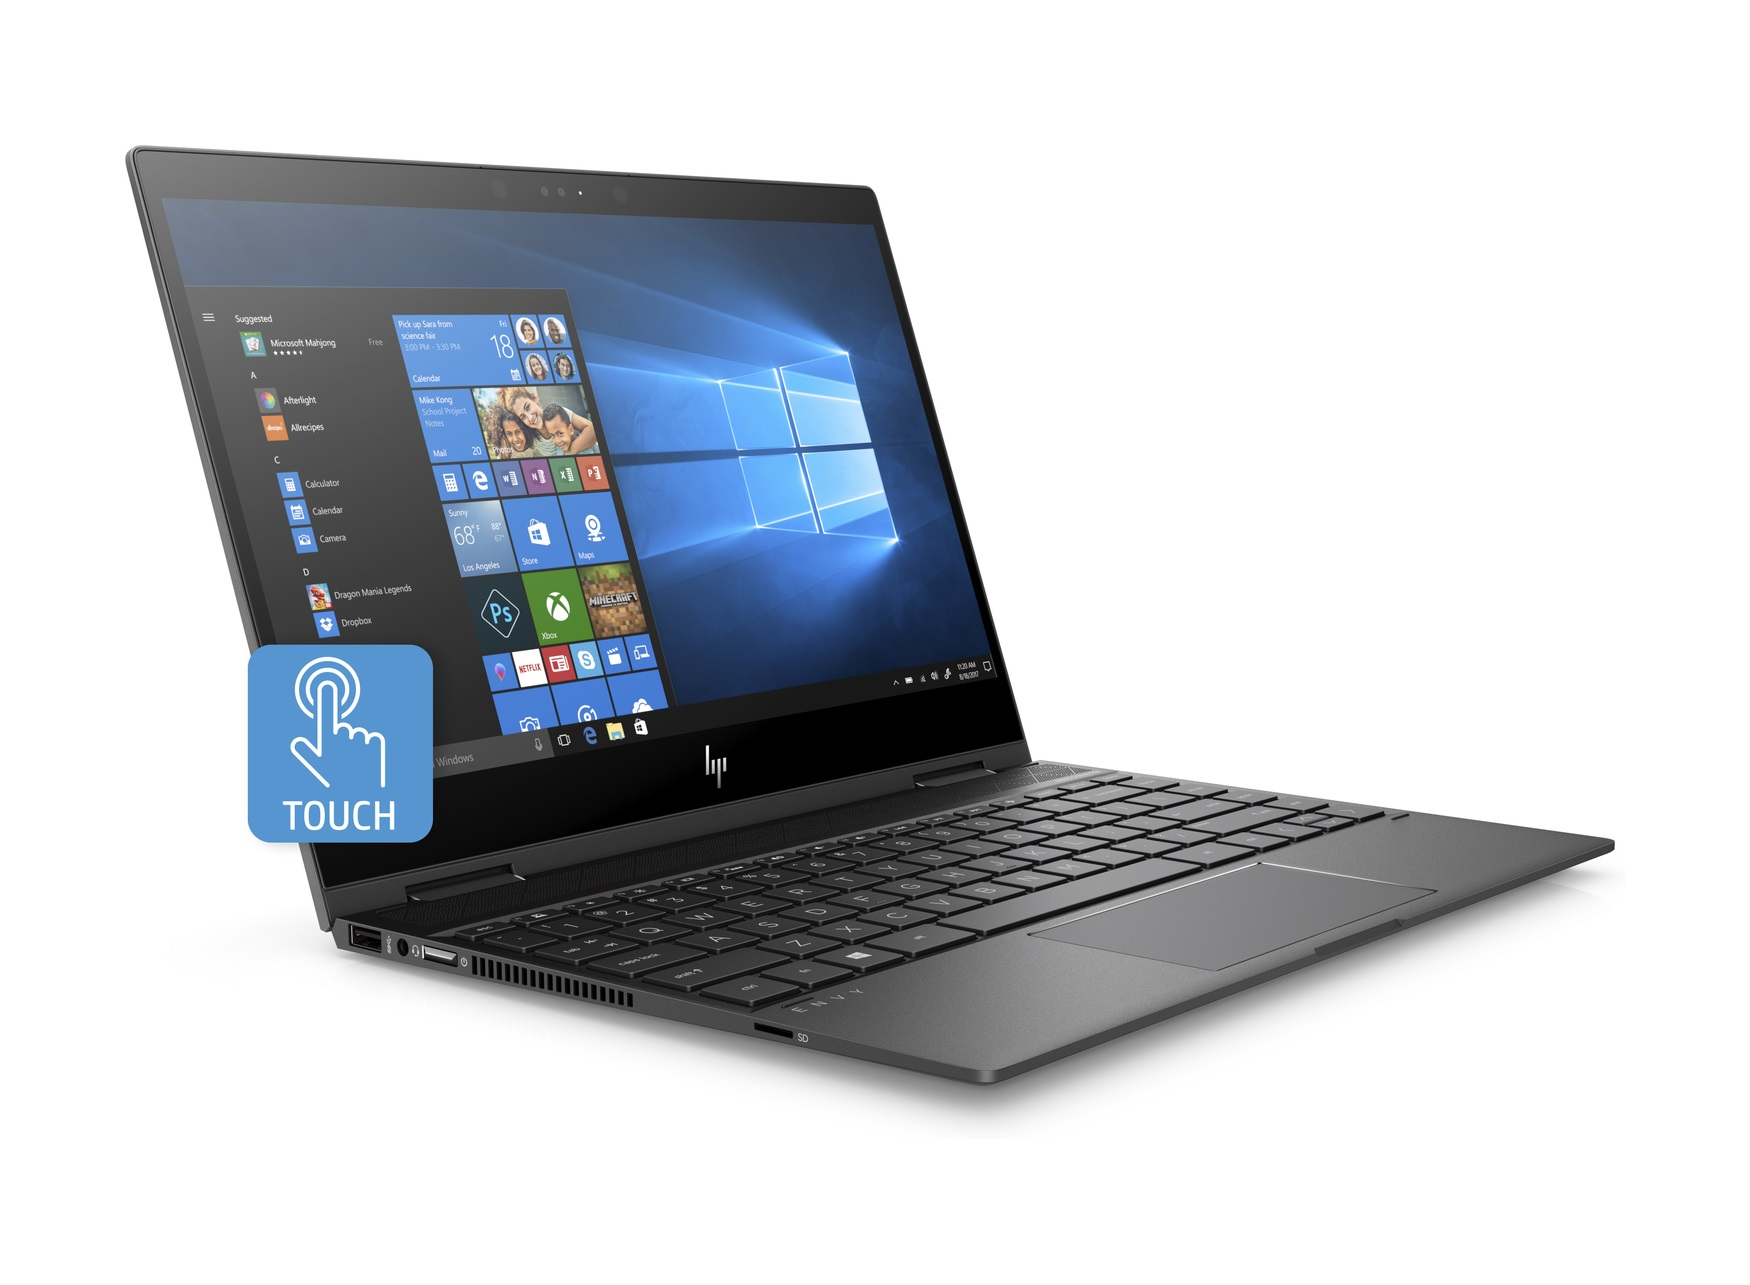 HP ENVY x360 13 3 AMD Ryzen 5 2500U (2 00 GHz) 8 GB Memory 128 GB